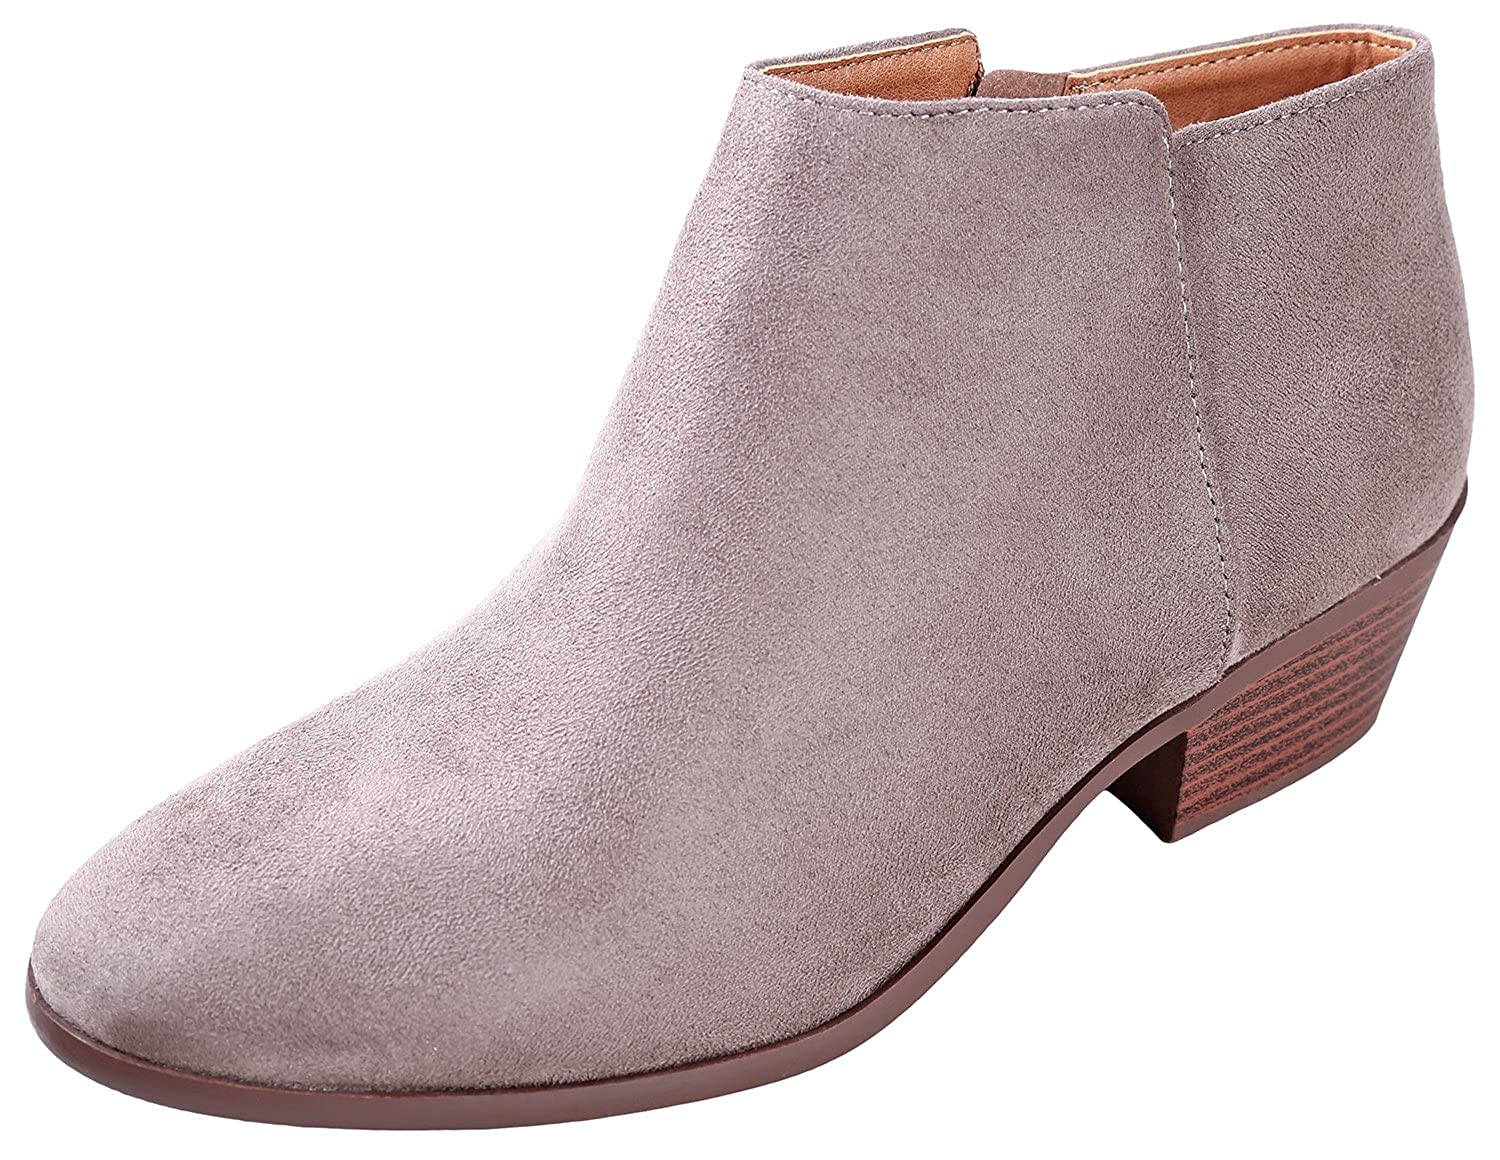 81cc52dc951 SODA Women's Round Toe Faux Suede Stacked Heel Western Ankle Bootie, Clay,  85 M US